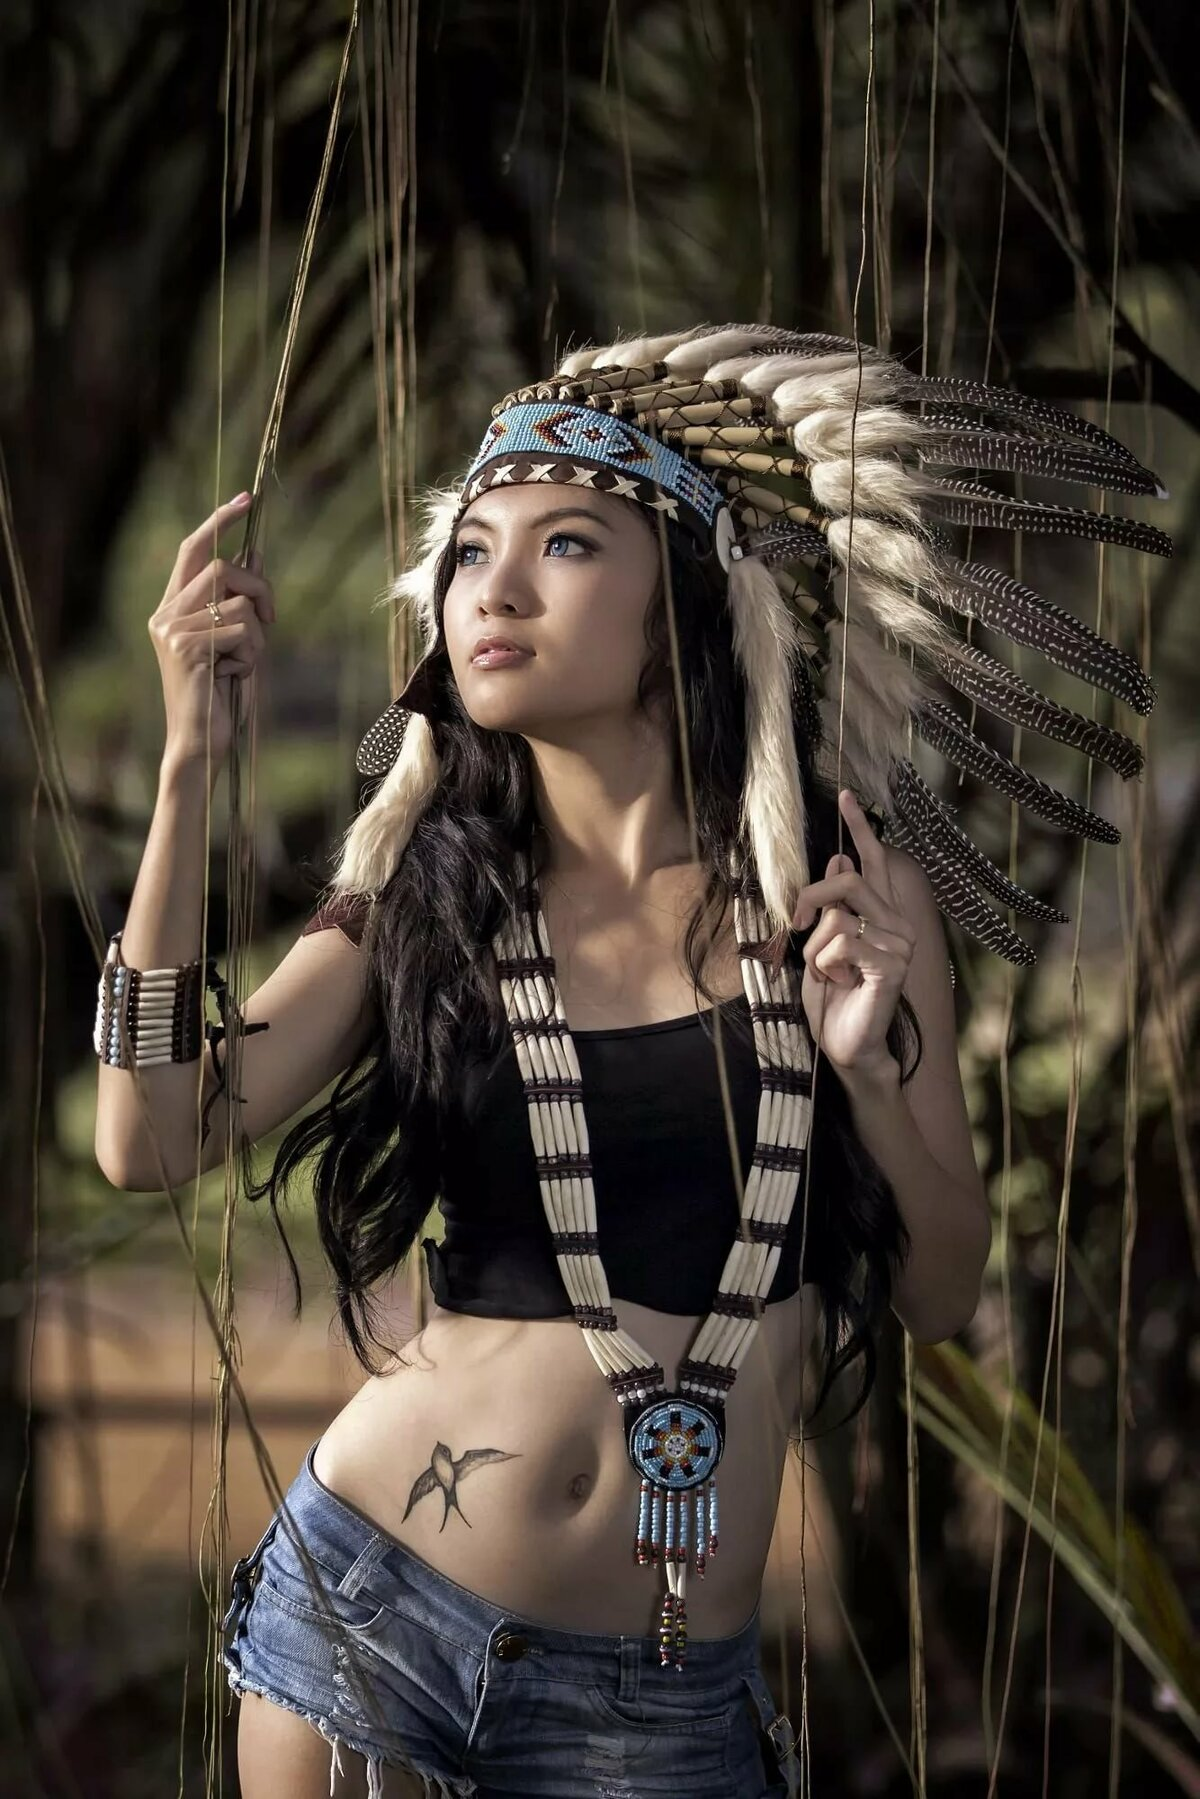 Anal american indian girl — photo 3